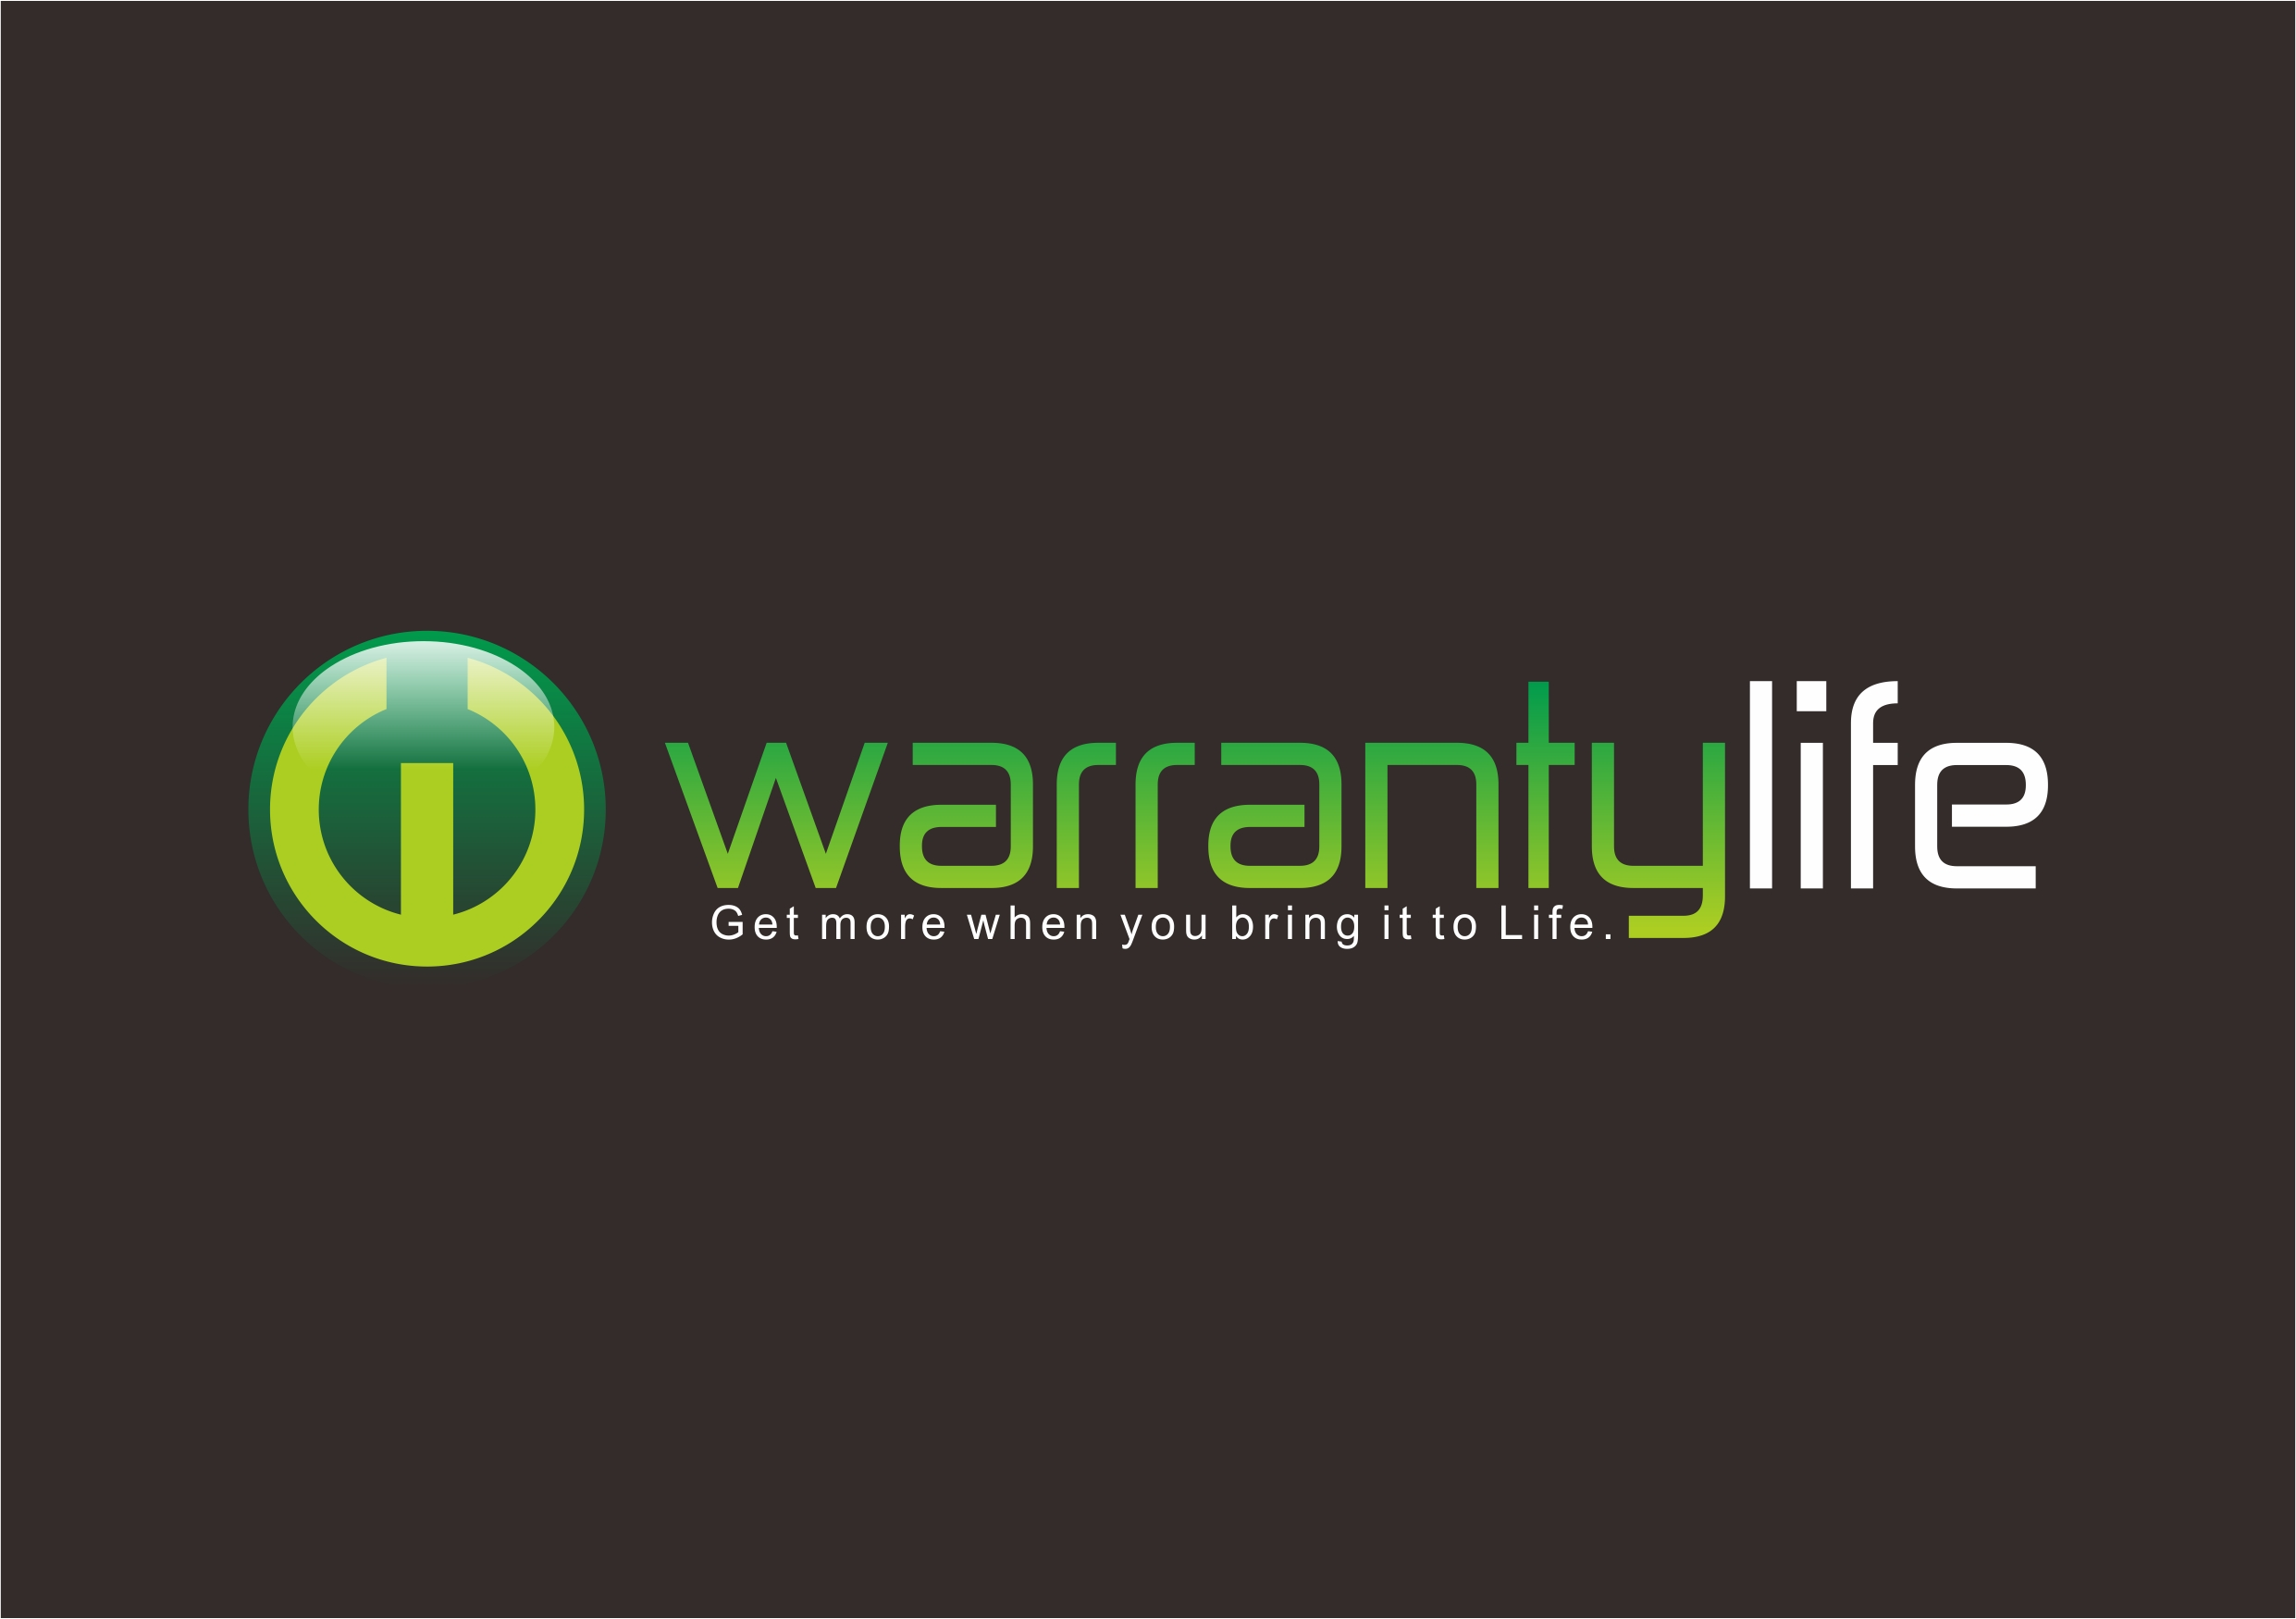 Logo Design by Teguh Mudjianto - Entry No. 10 in the Logo Design Contest WarrantyLife Logo Design.